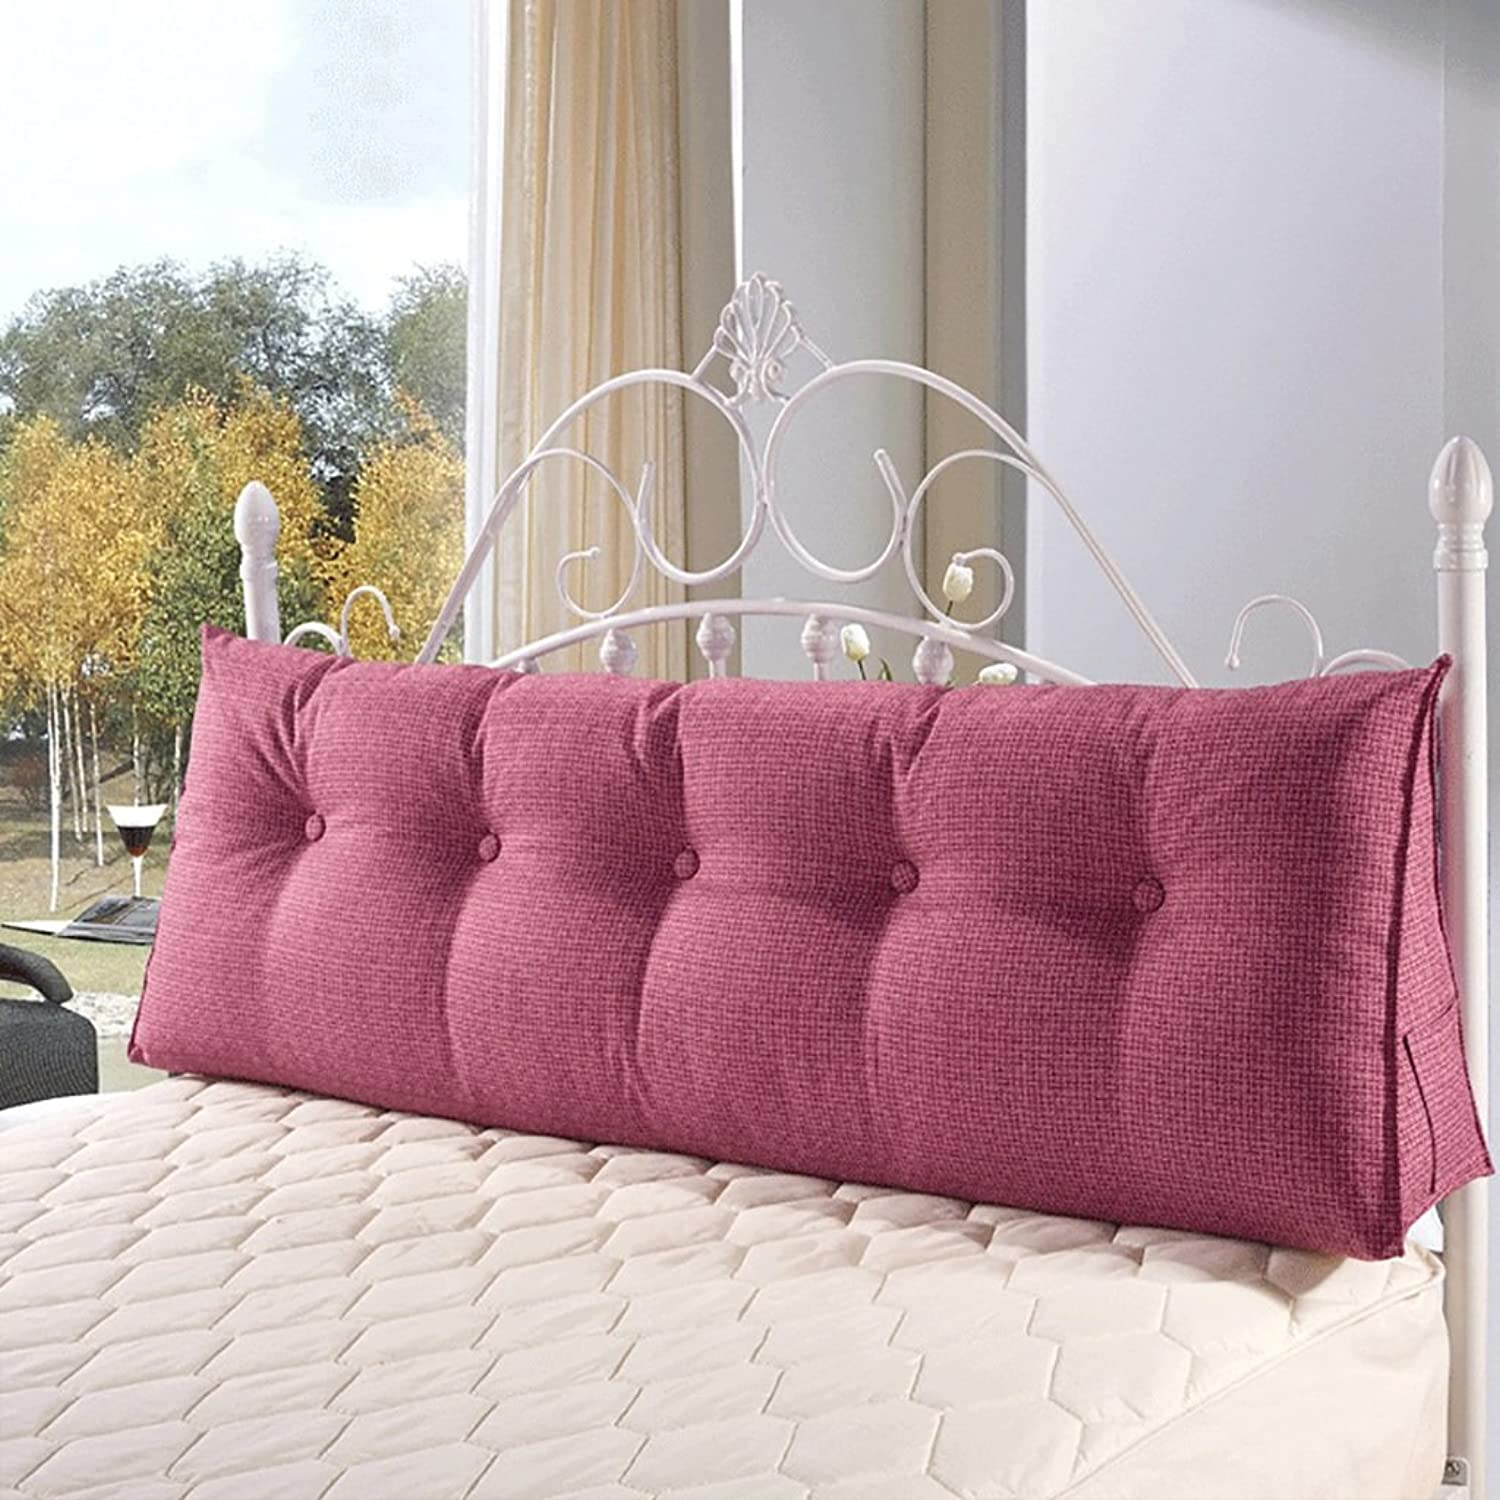 RFJJAL Bed Large Back Sofa Cushion Bed Head Pillow Long Pillow Bed Back Cushion Soft Bag Without Bed Double Washable (color   Purple, Size   60  50  20cm)